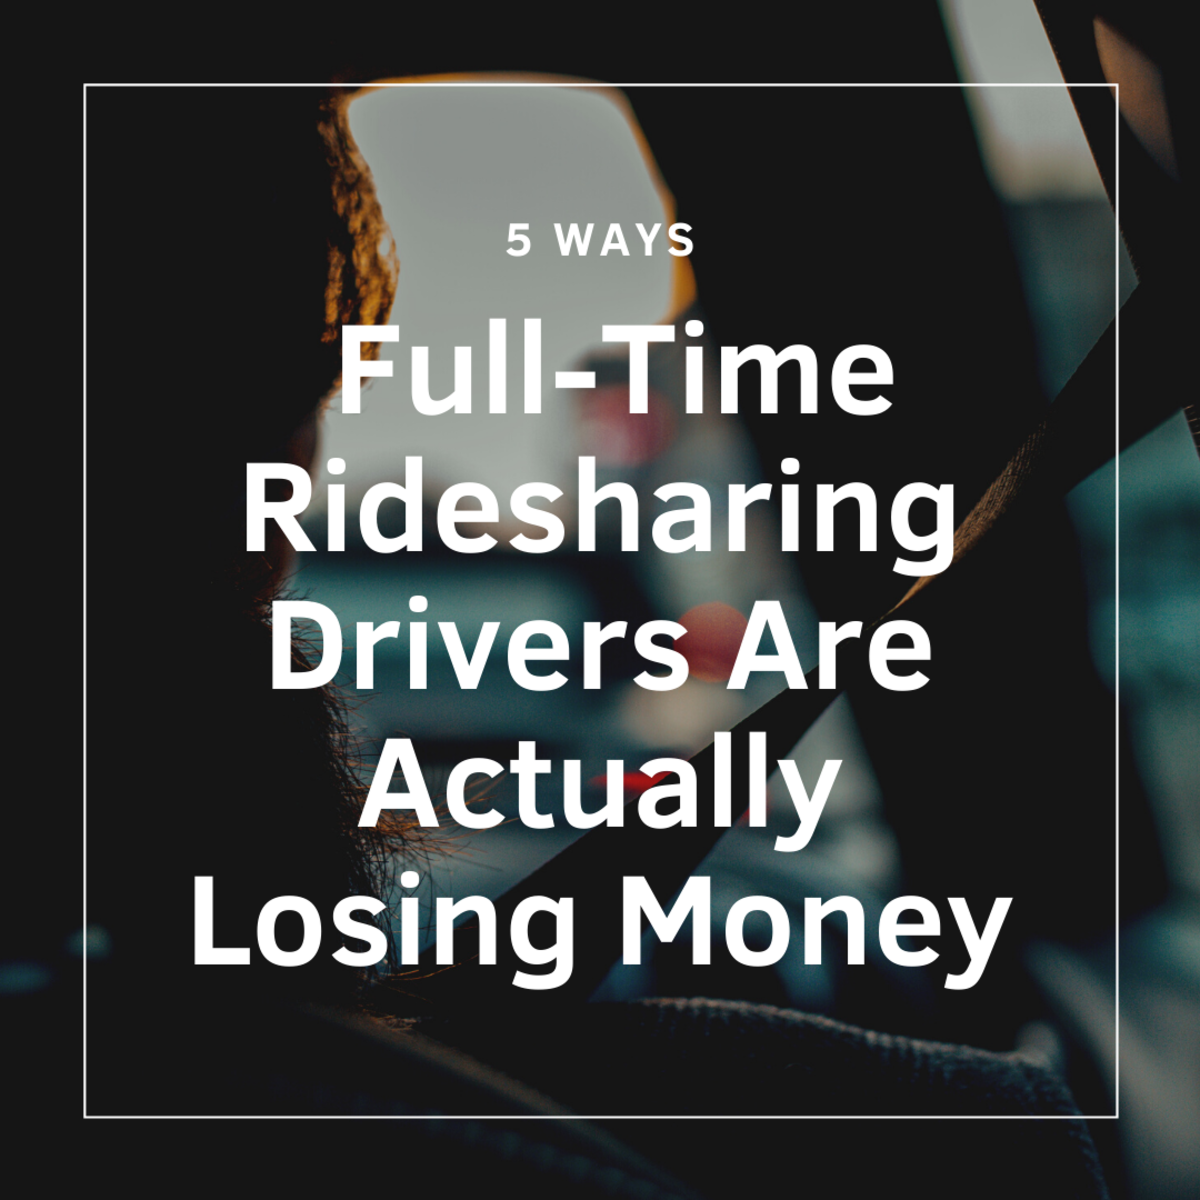 Five Ways Full-Time Ridesharing Drivers Are Actually Losing Money